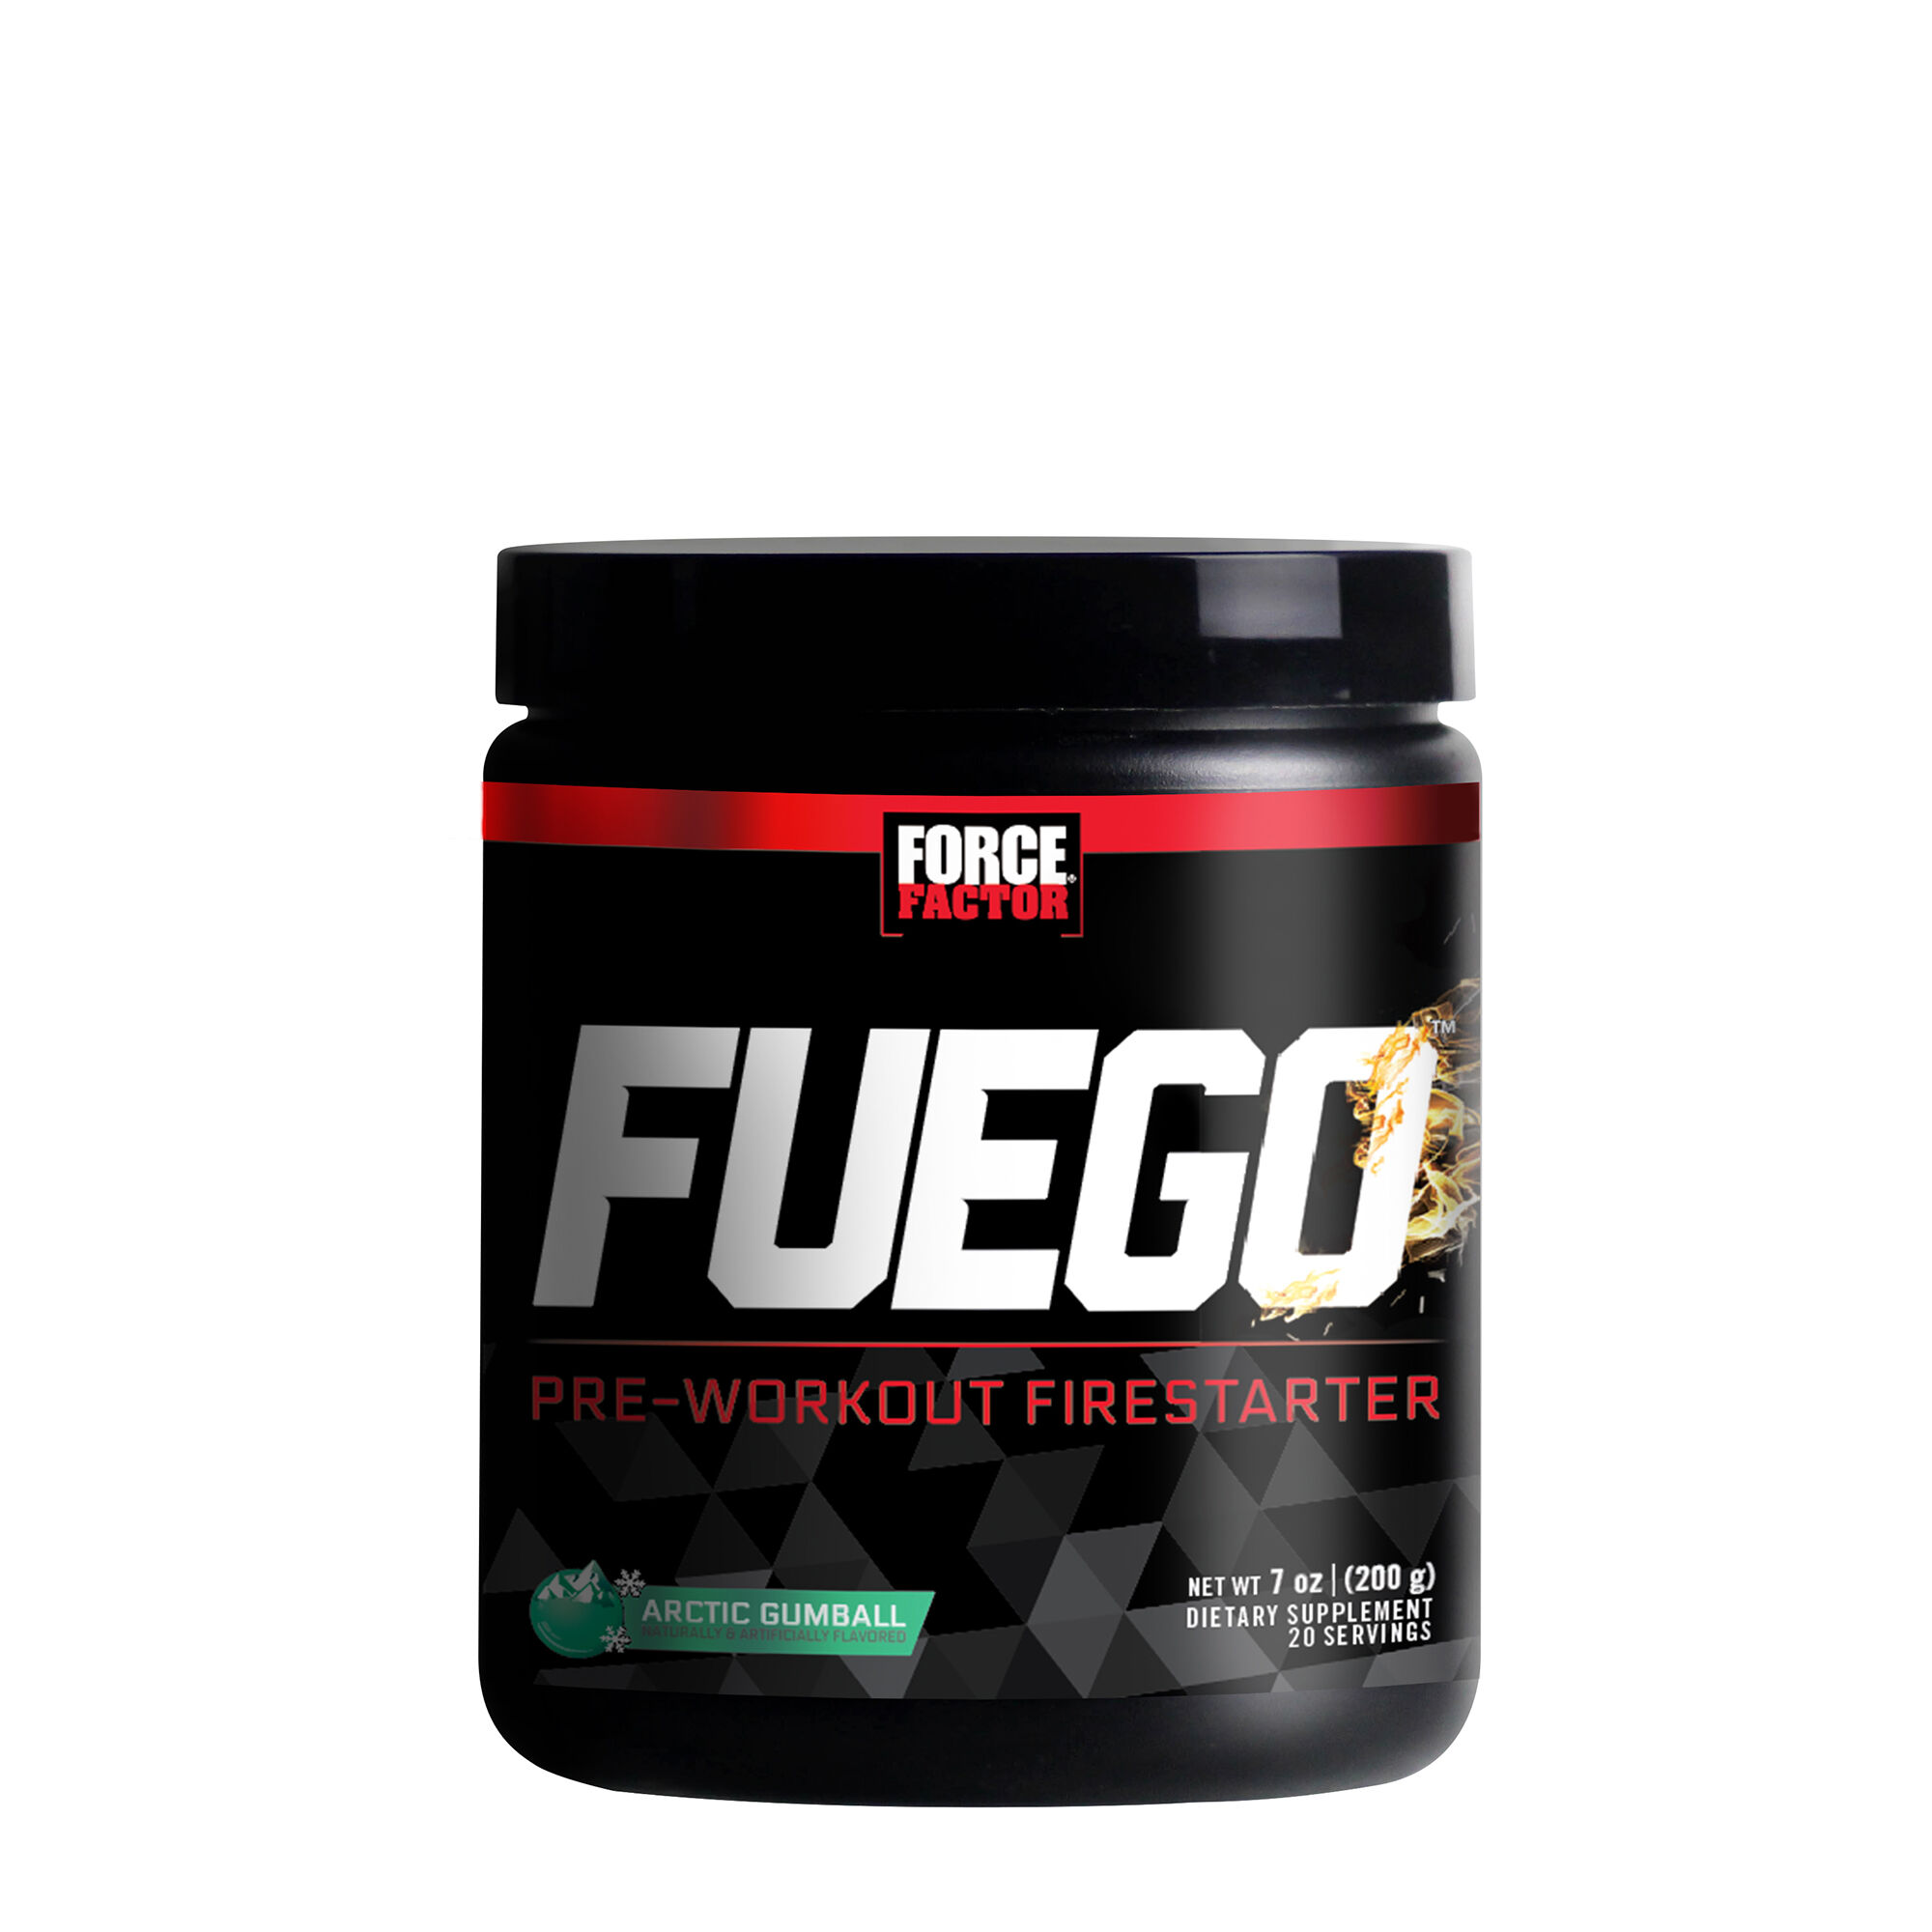 blog pre workout Let's talk pre-workout for weight loss trainer lindsey here we're about to get into the nitty-gritty about products that can help with your weight loss, one major one: pre-workout.